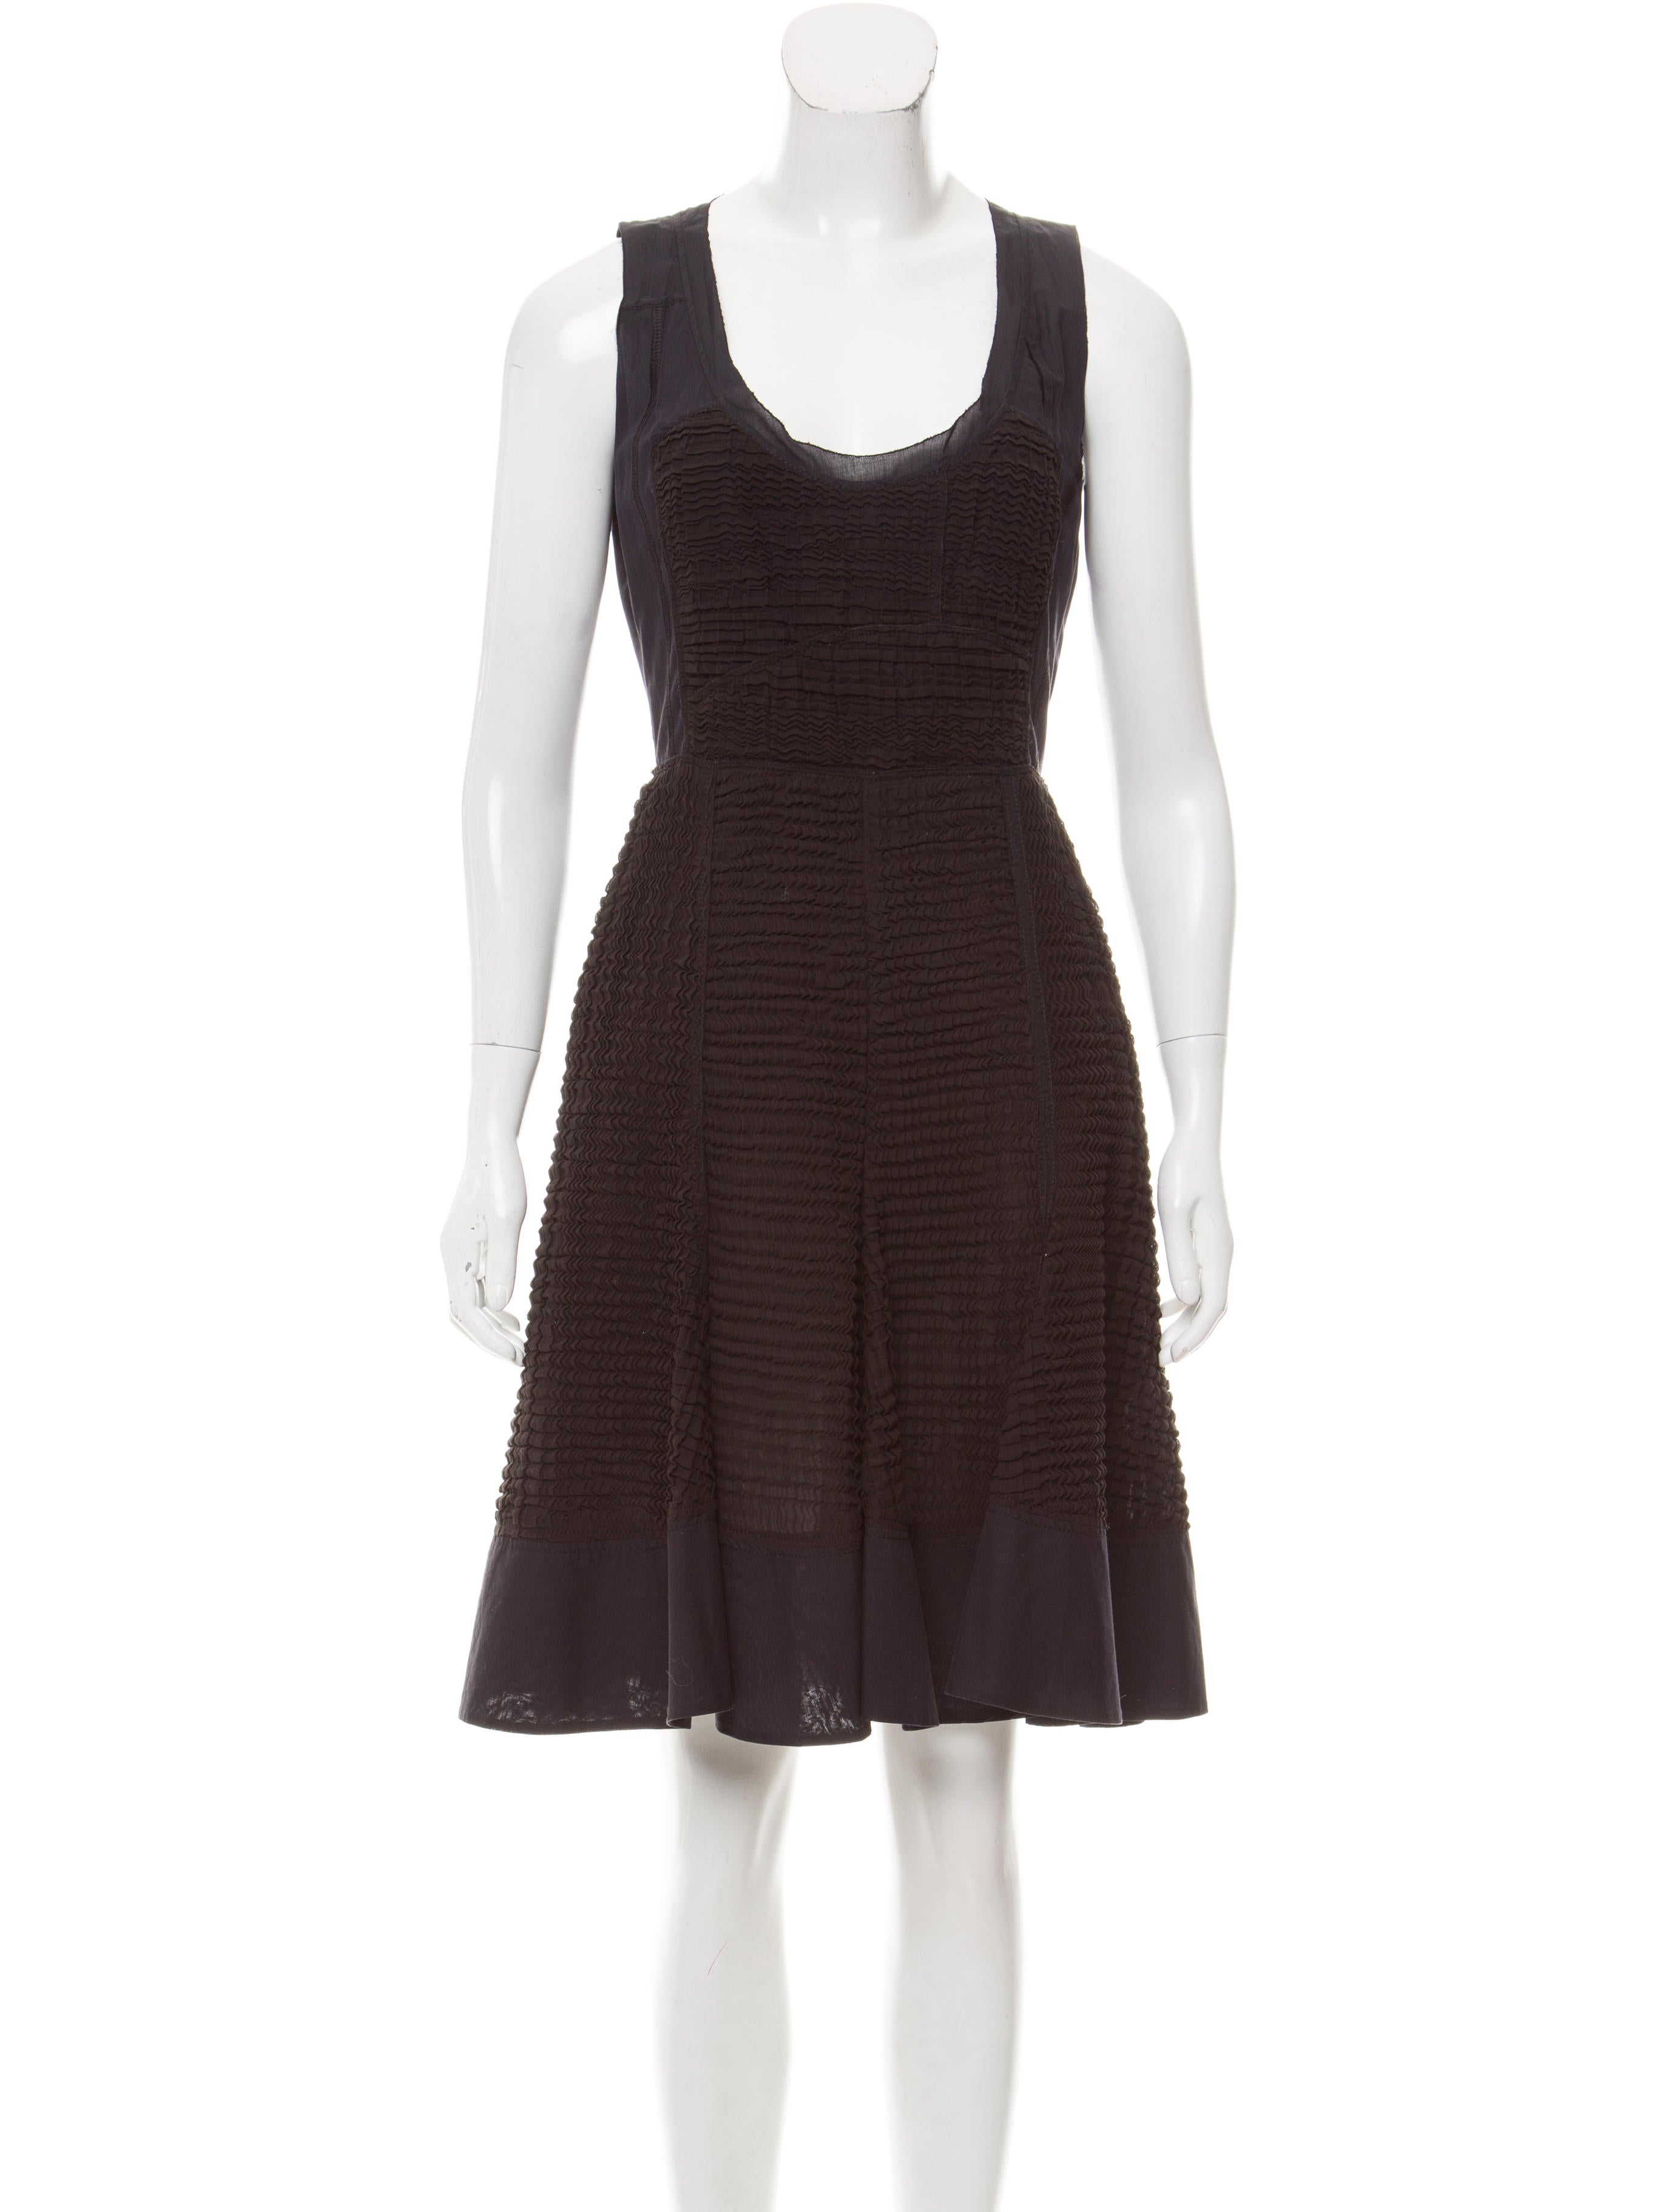 Prada Textured Knee-Length Dress - Clothing - PRA164283